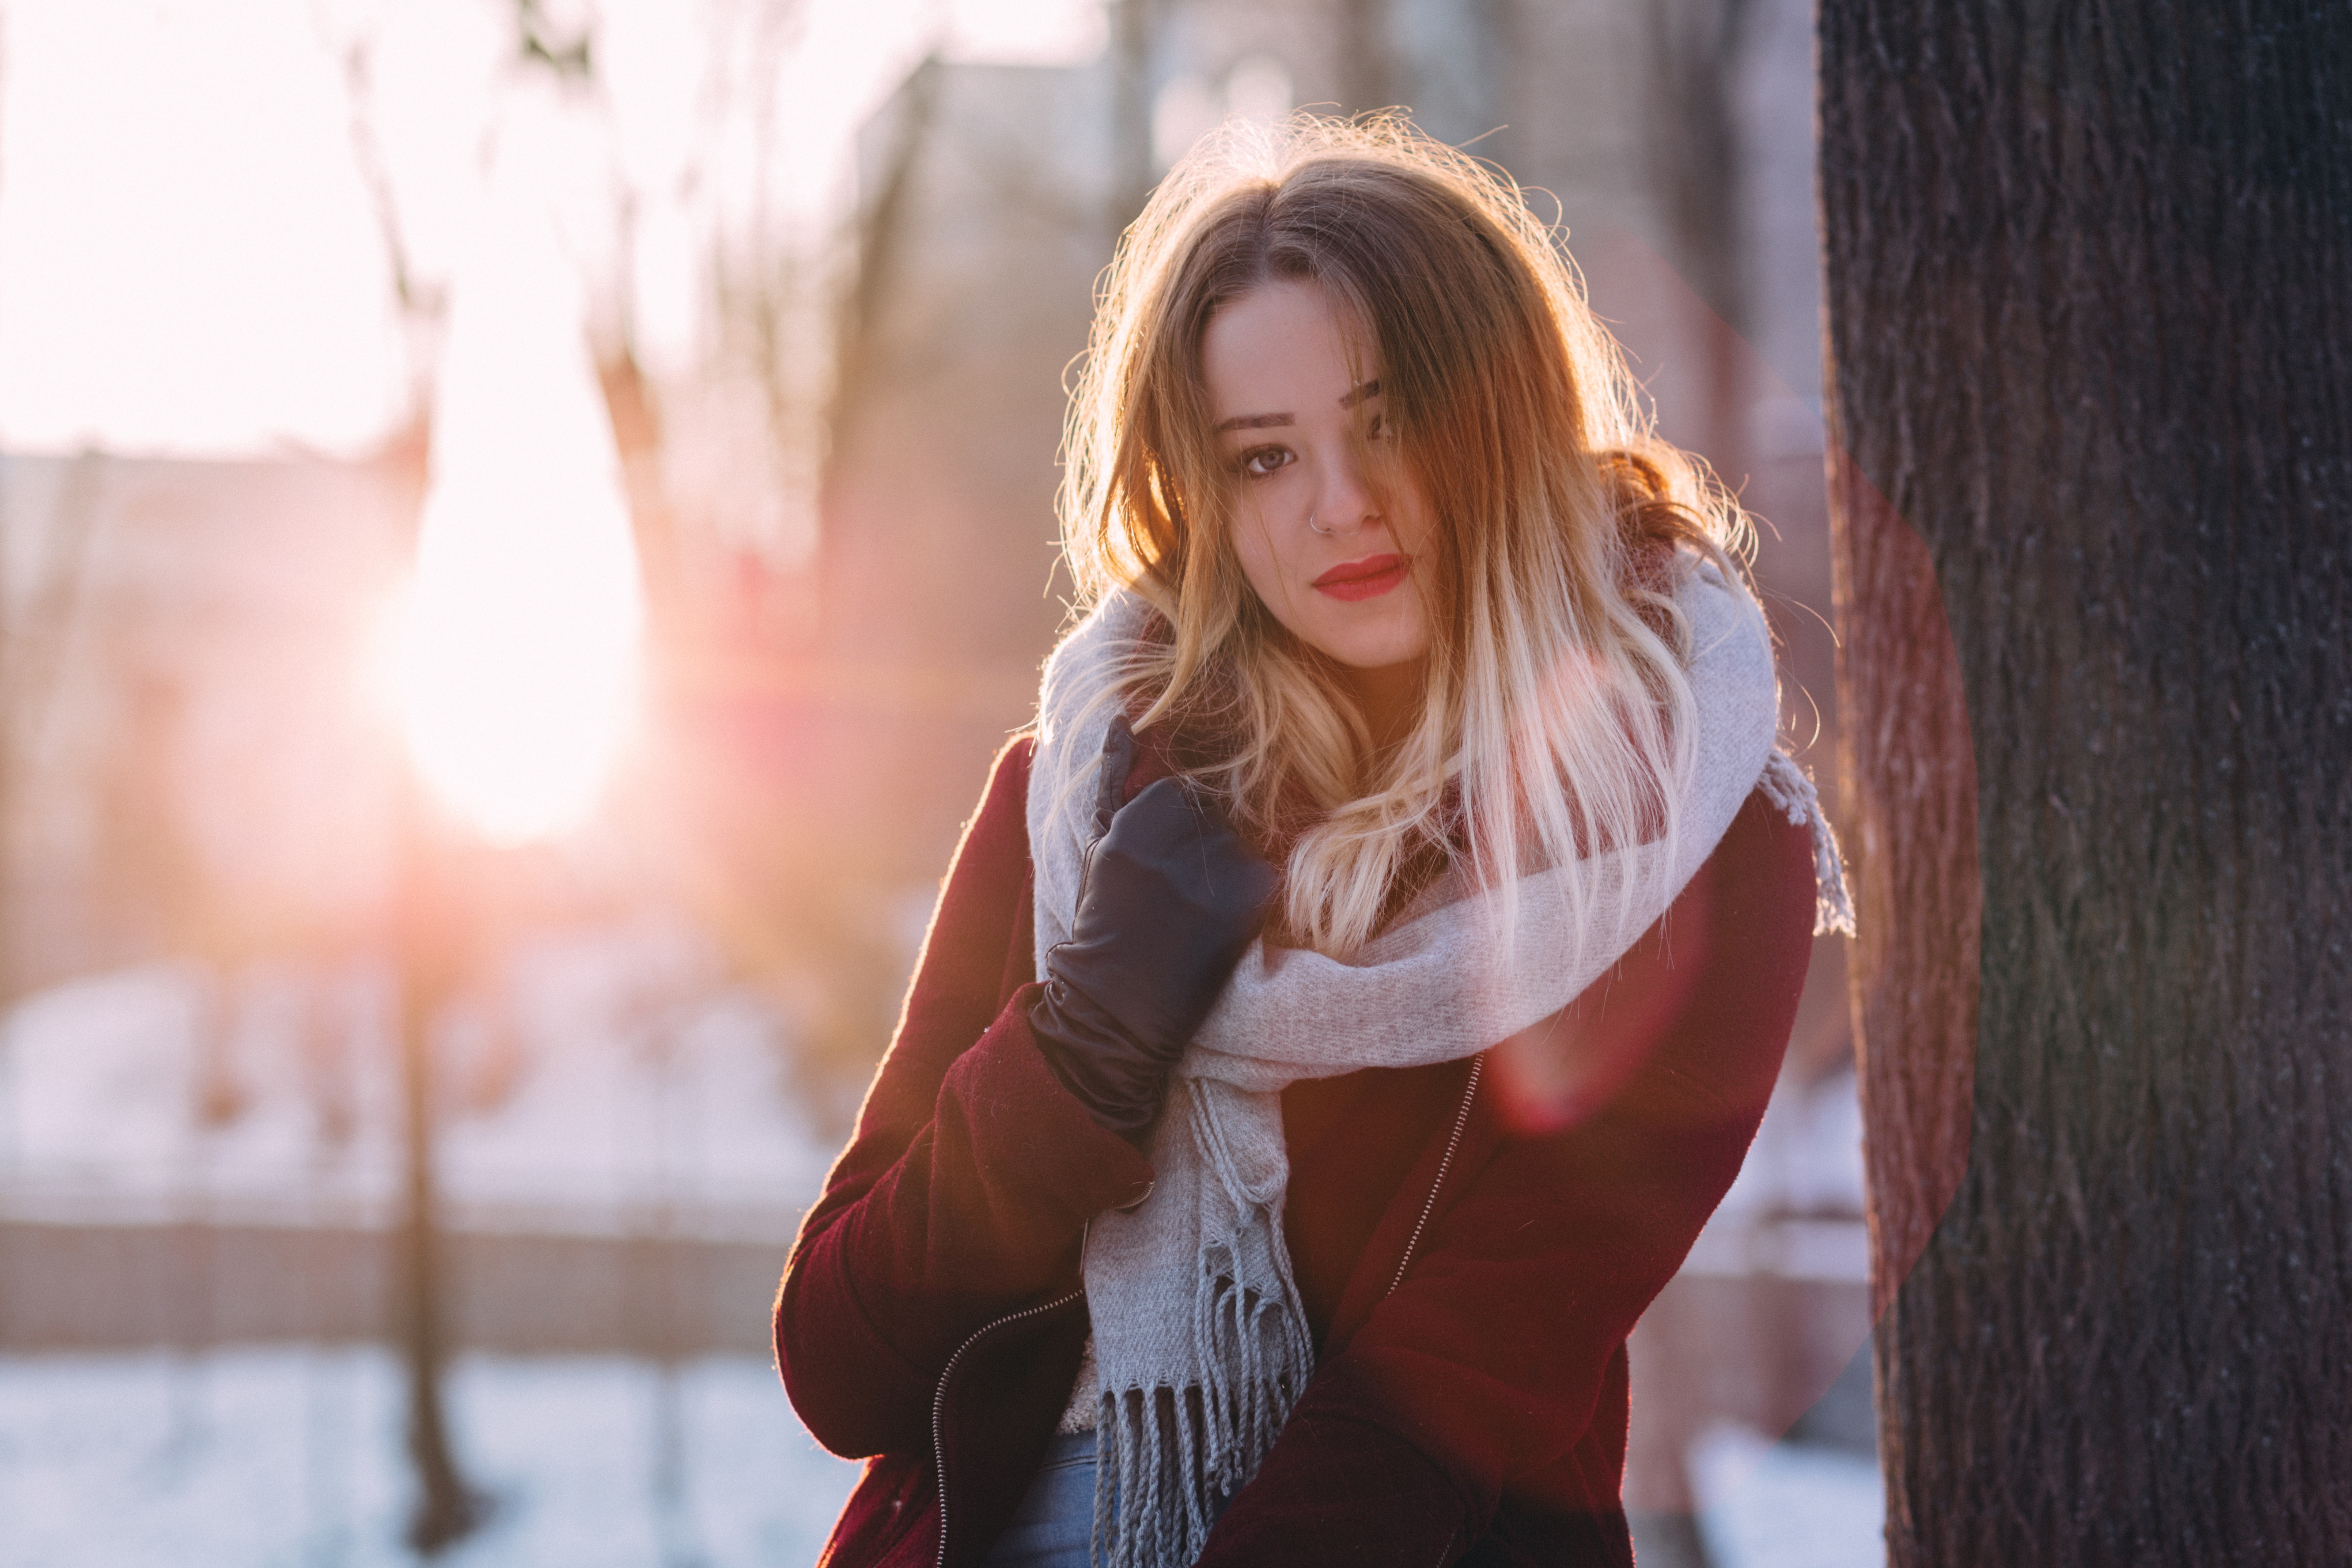 Portrait of young woman during winter photo